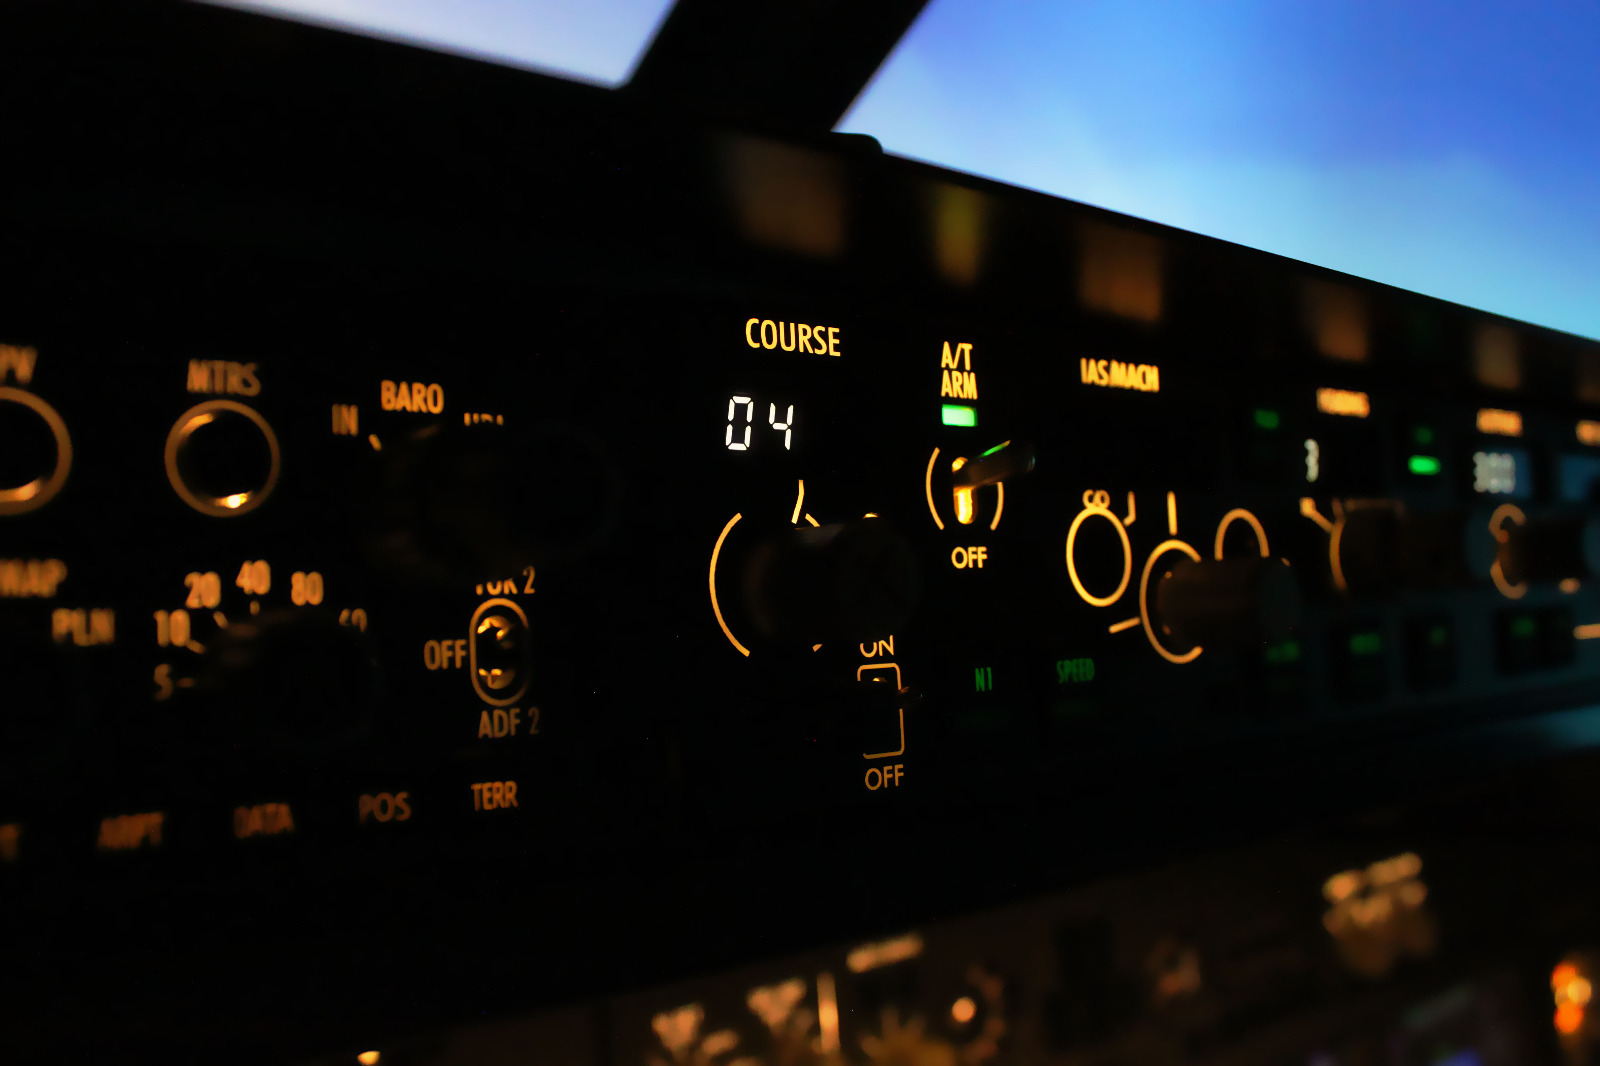 FLY.SIMFLIGHT - BOEING 737-800 SIMULATOR TICKETS - 90 MINUTE FLIGHT - KALTENKIRCHEN, GERMANY